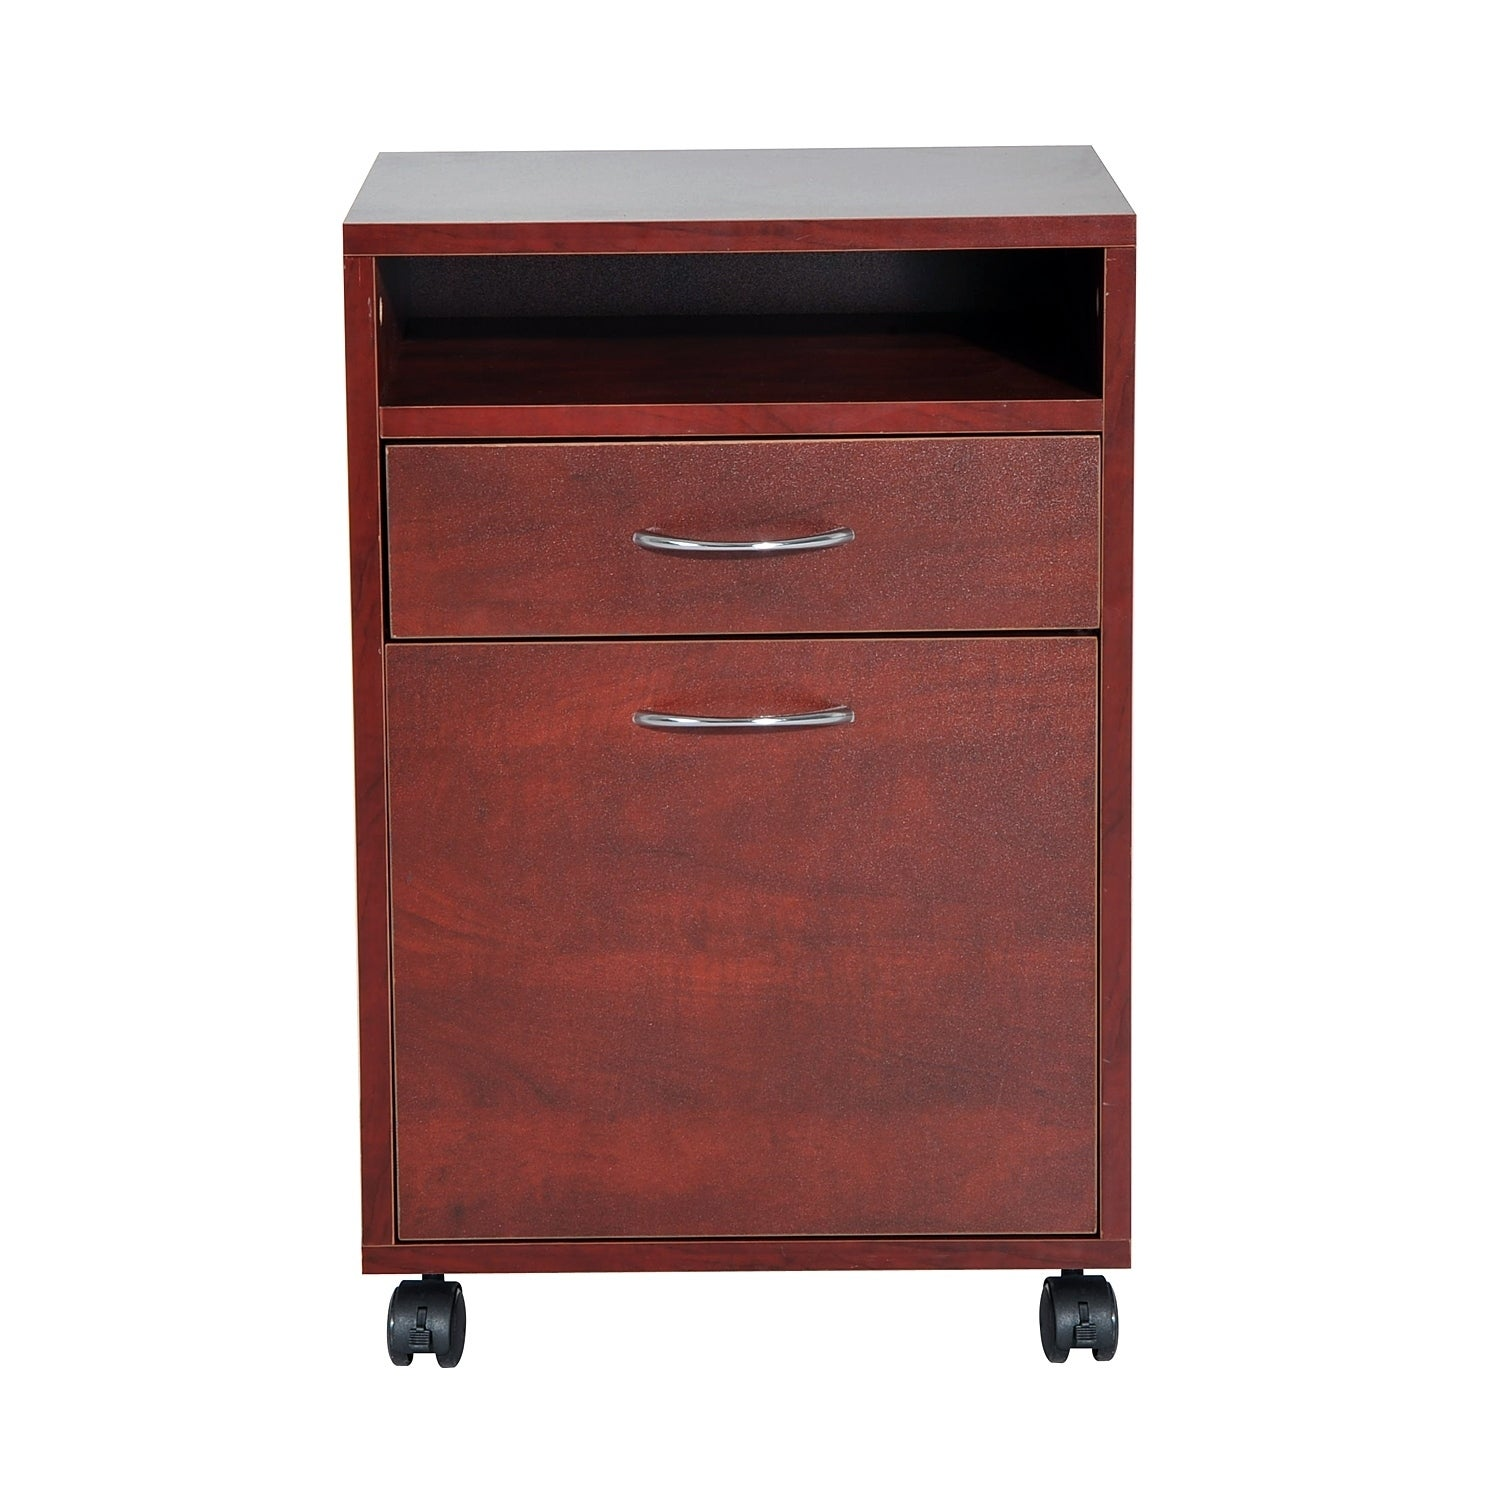 Homcom 24 Rolling End Table Mobile Printer Cart Nightstand Organizer Brown Free Shipping Today 18087017